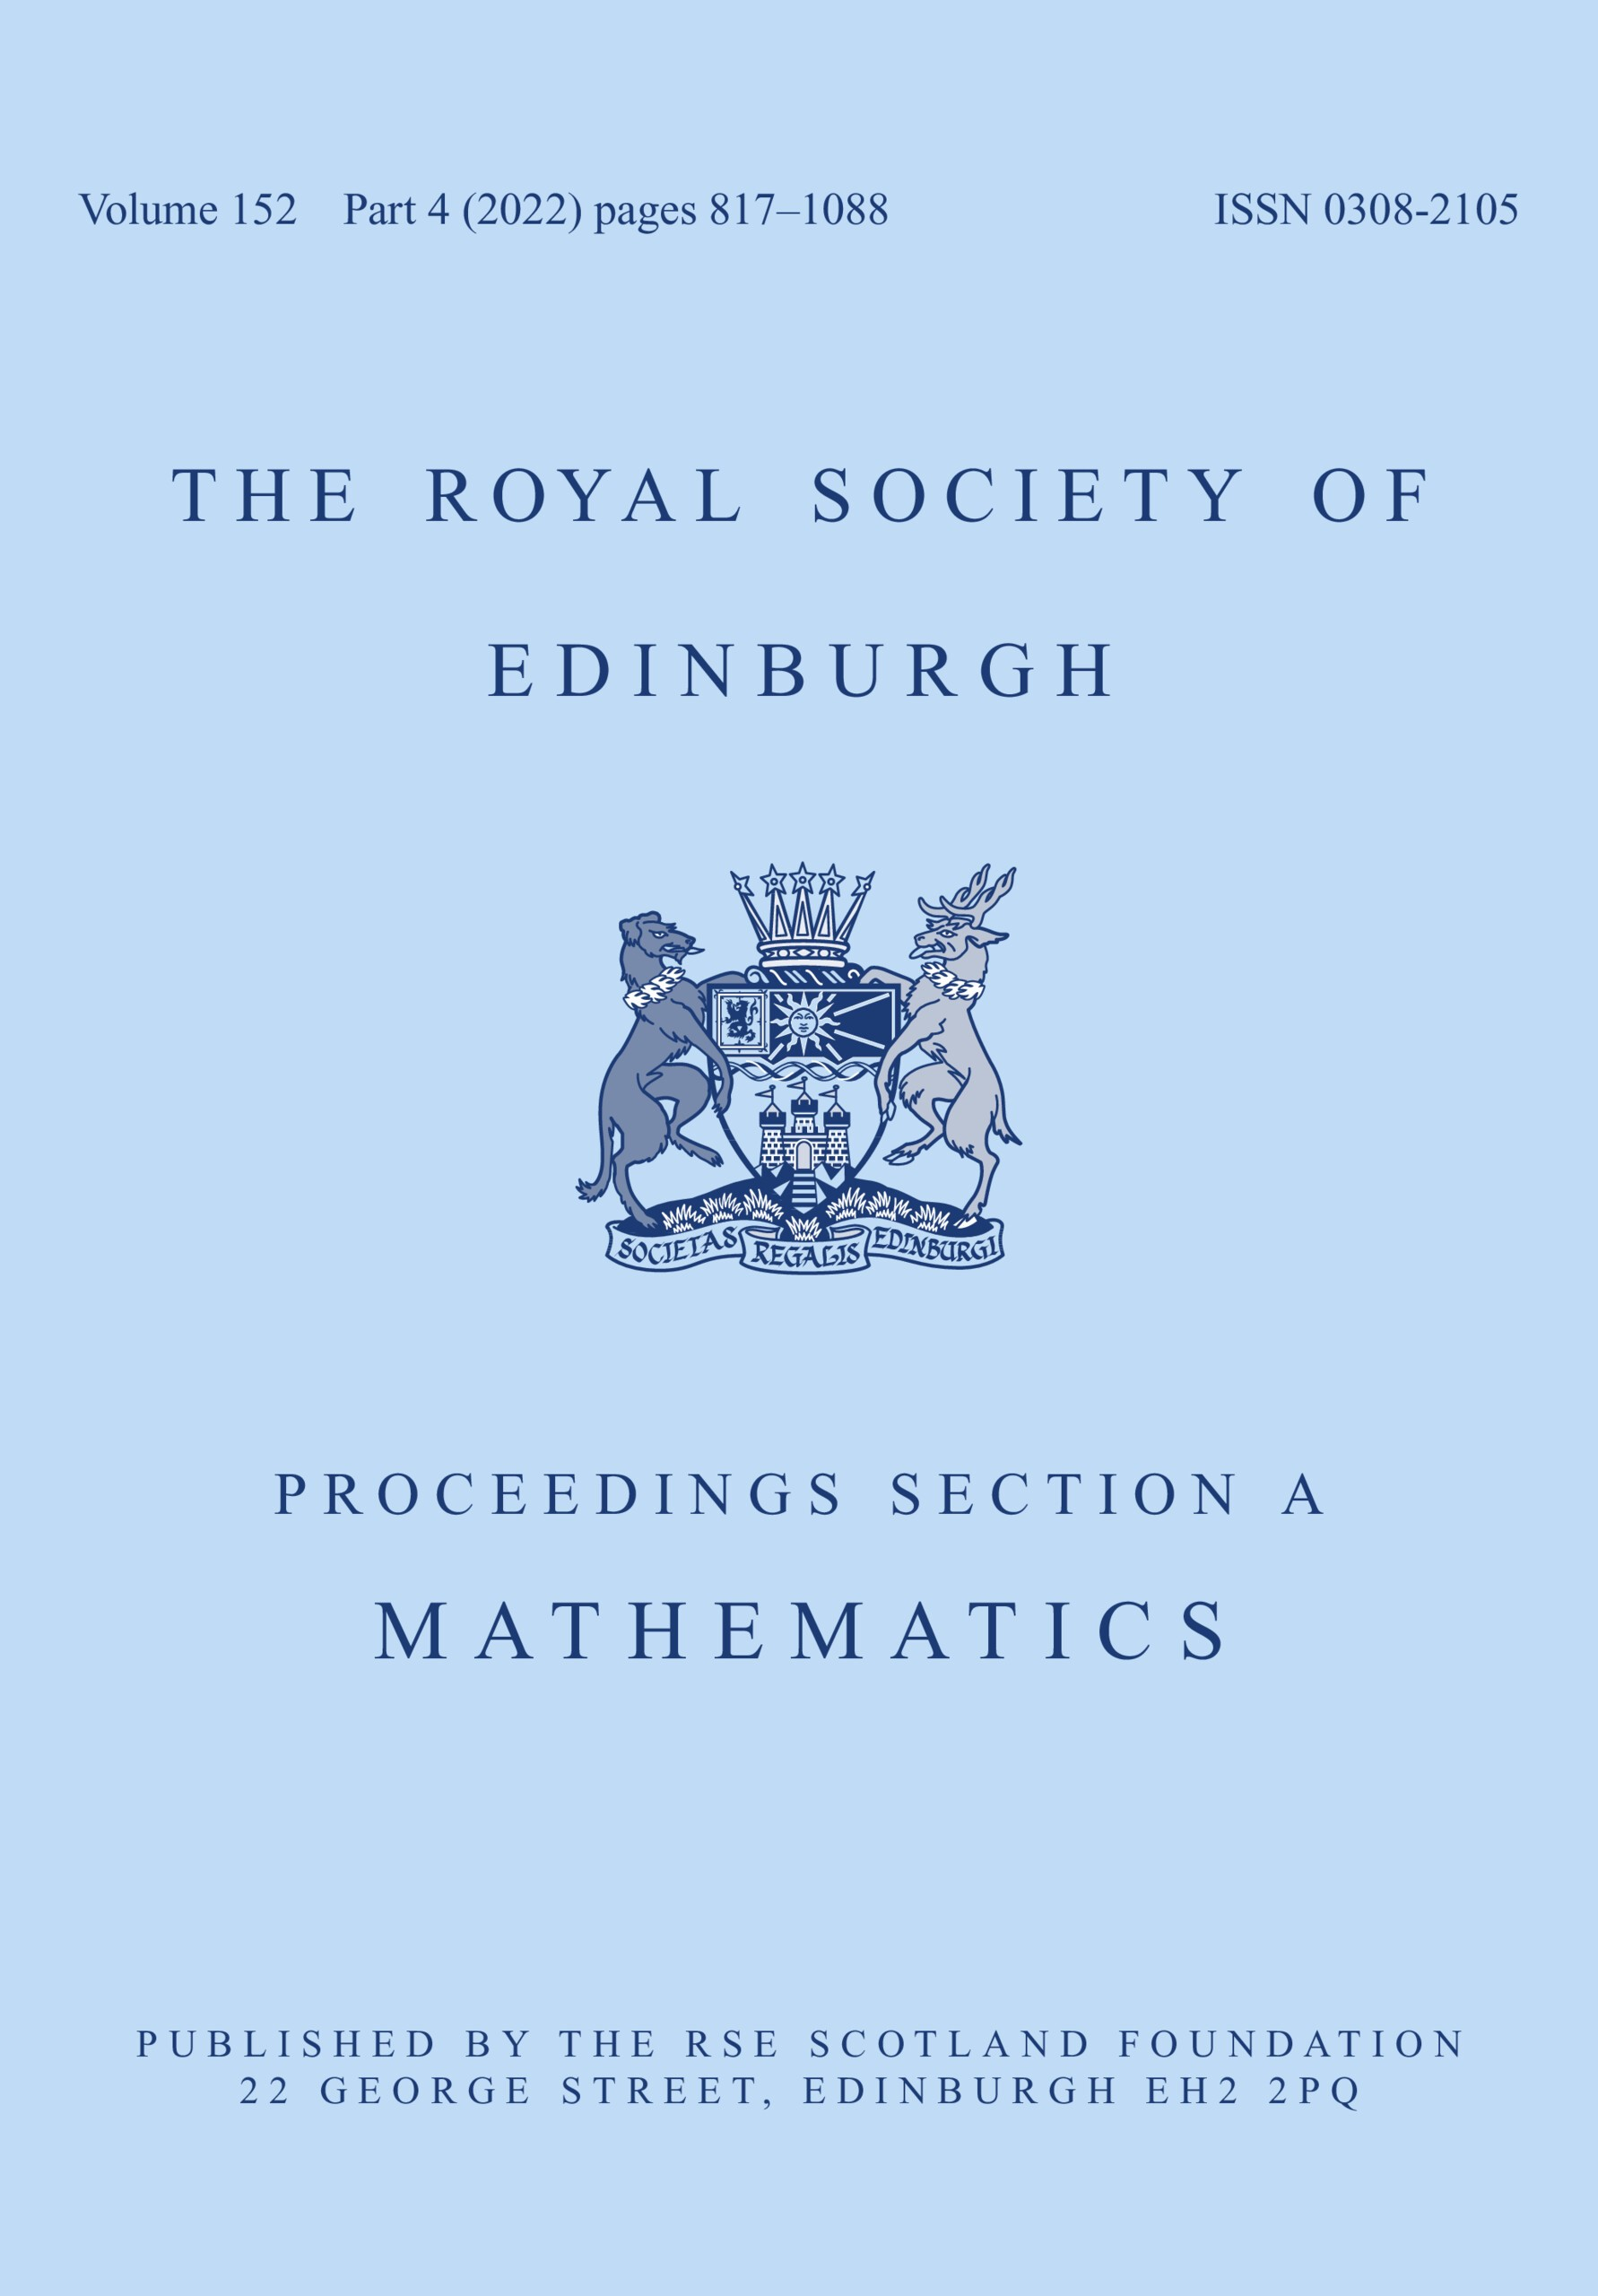 Proceedings of the Royal Society of Edinburgh Section A: Mathematics